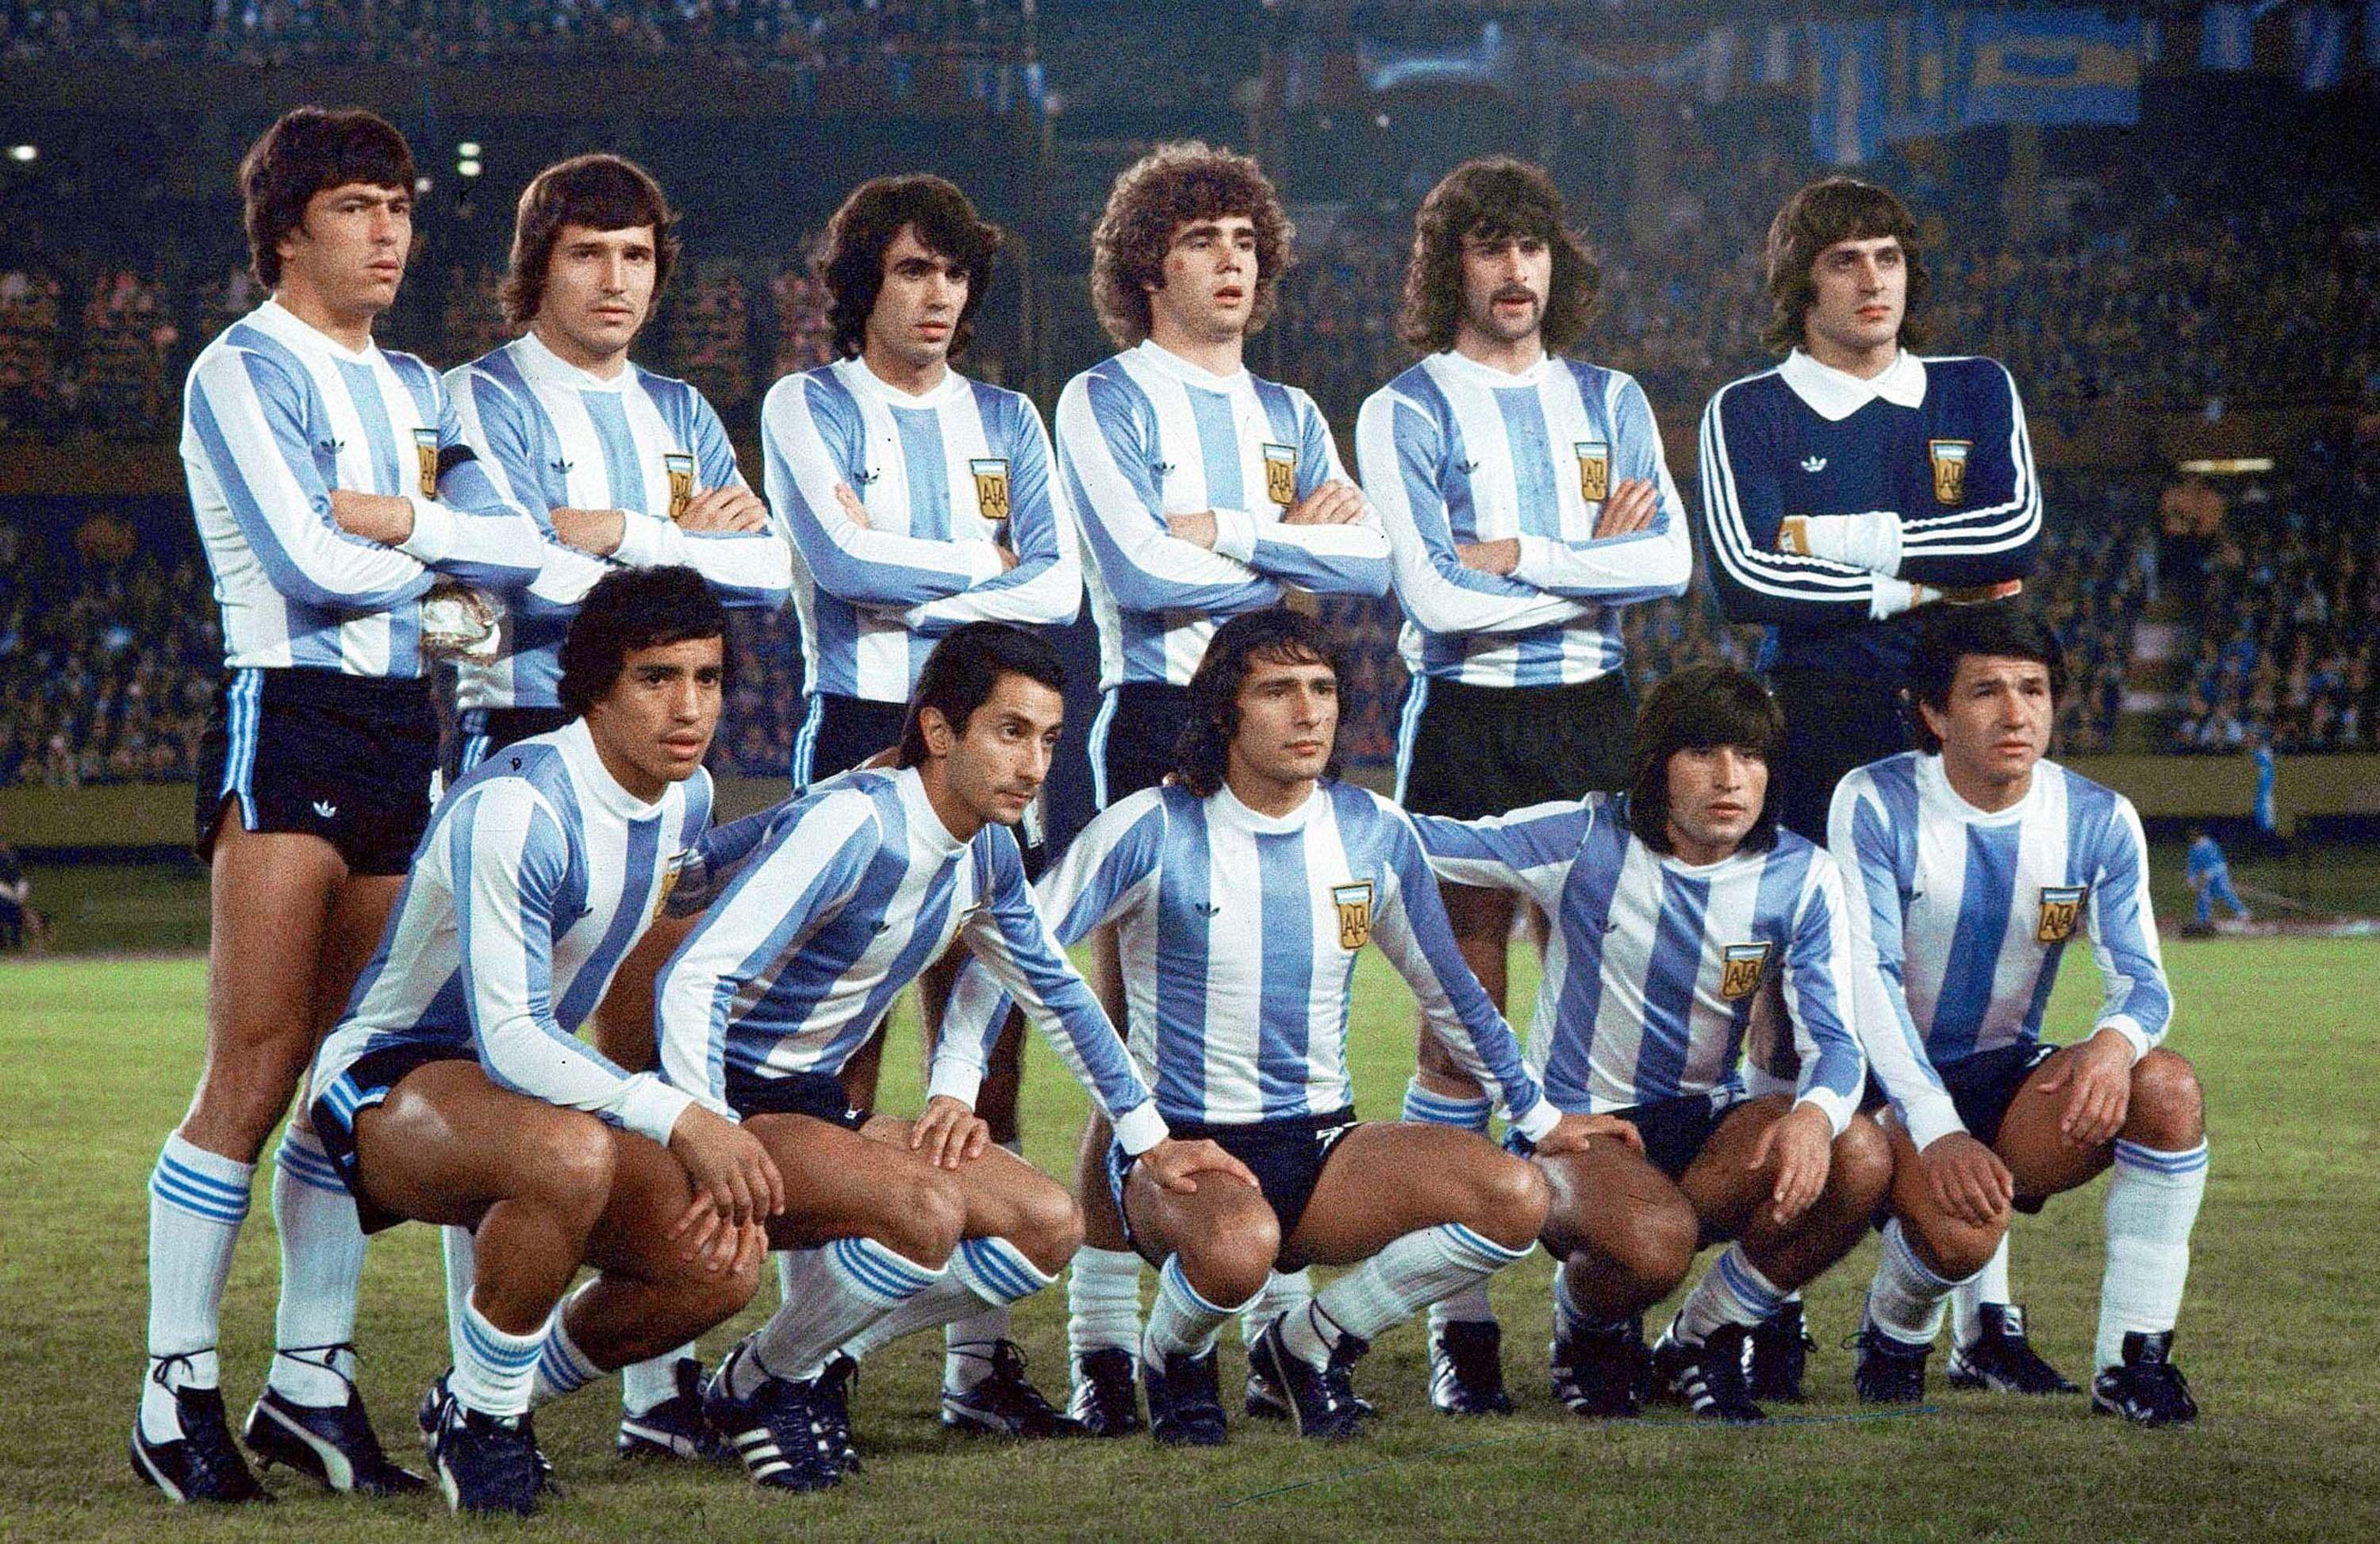 Argentina National Football Team Wallpapers: Wallpapers HD Soccer Team 2016